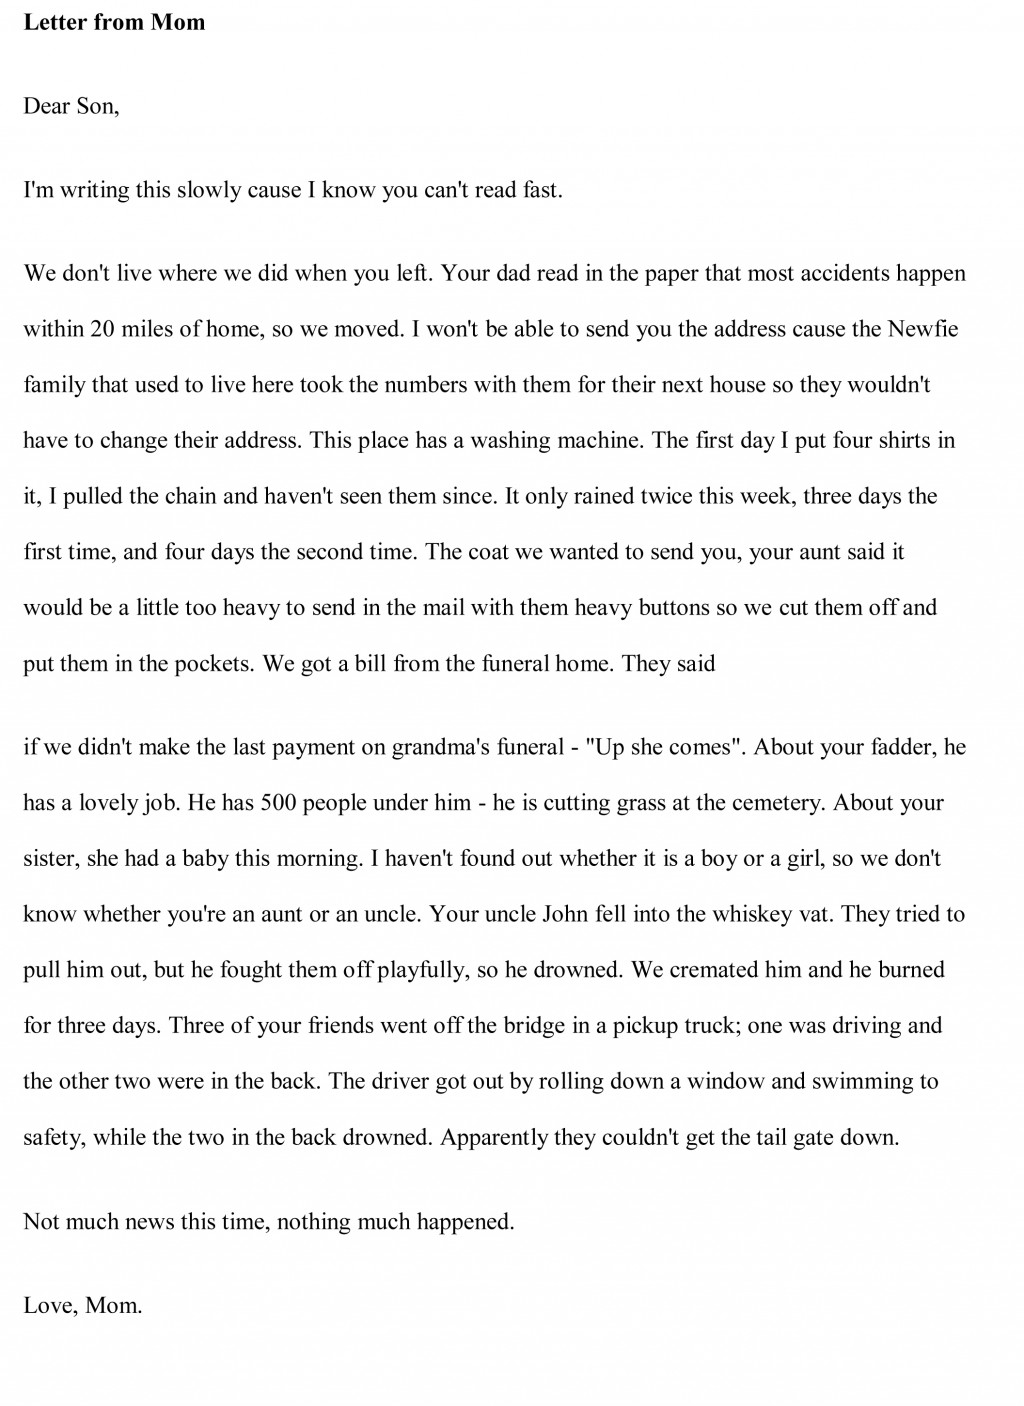 002 Informative Essay Definition Example Funny Free Outstanding Large